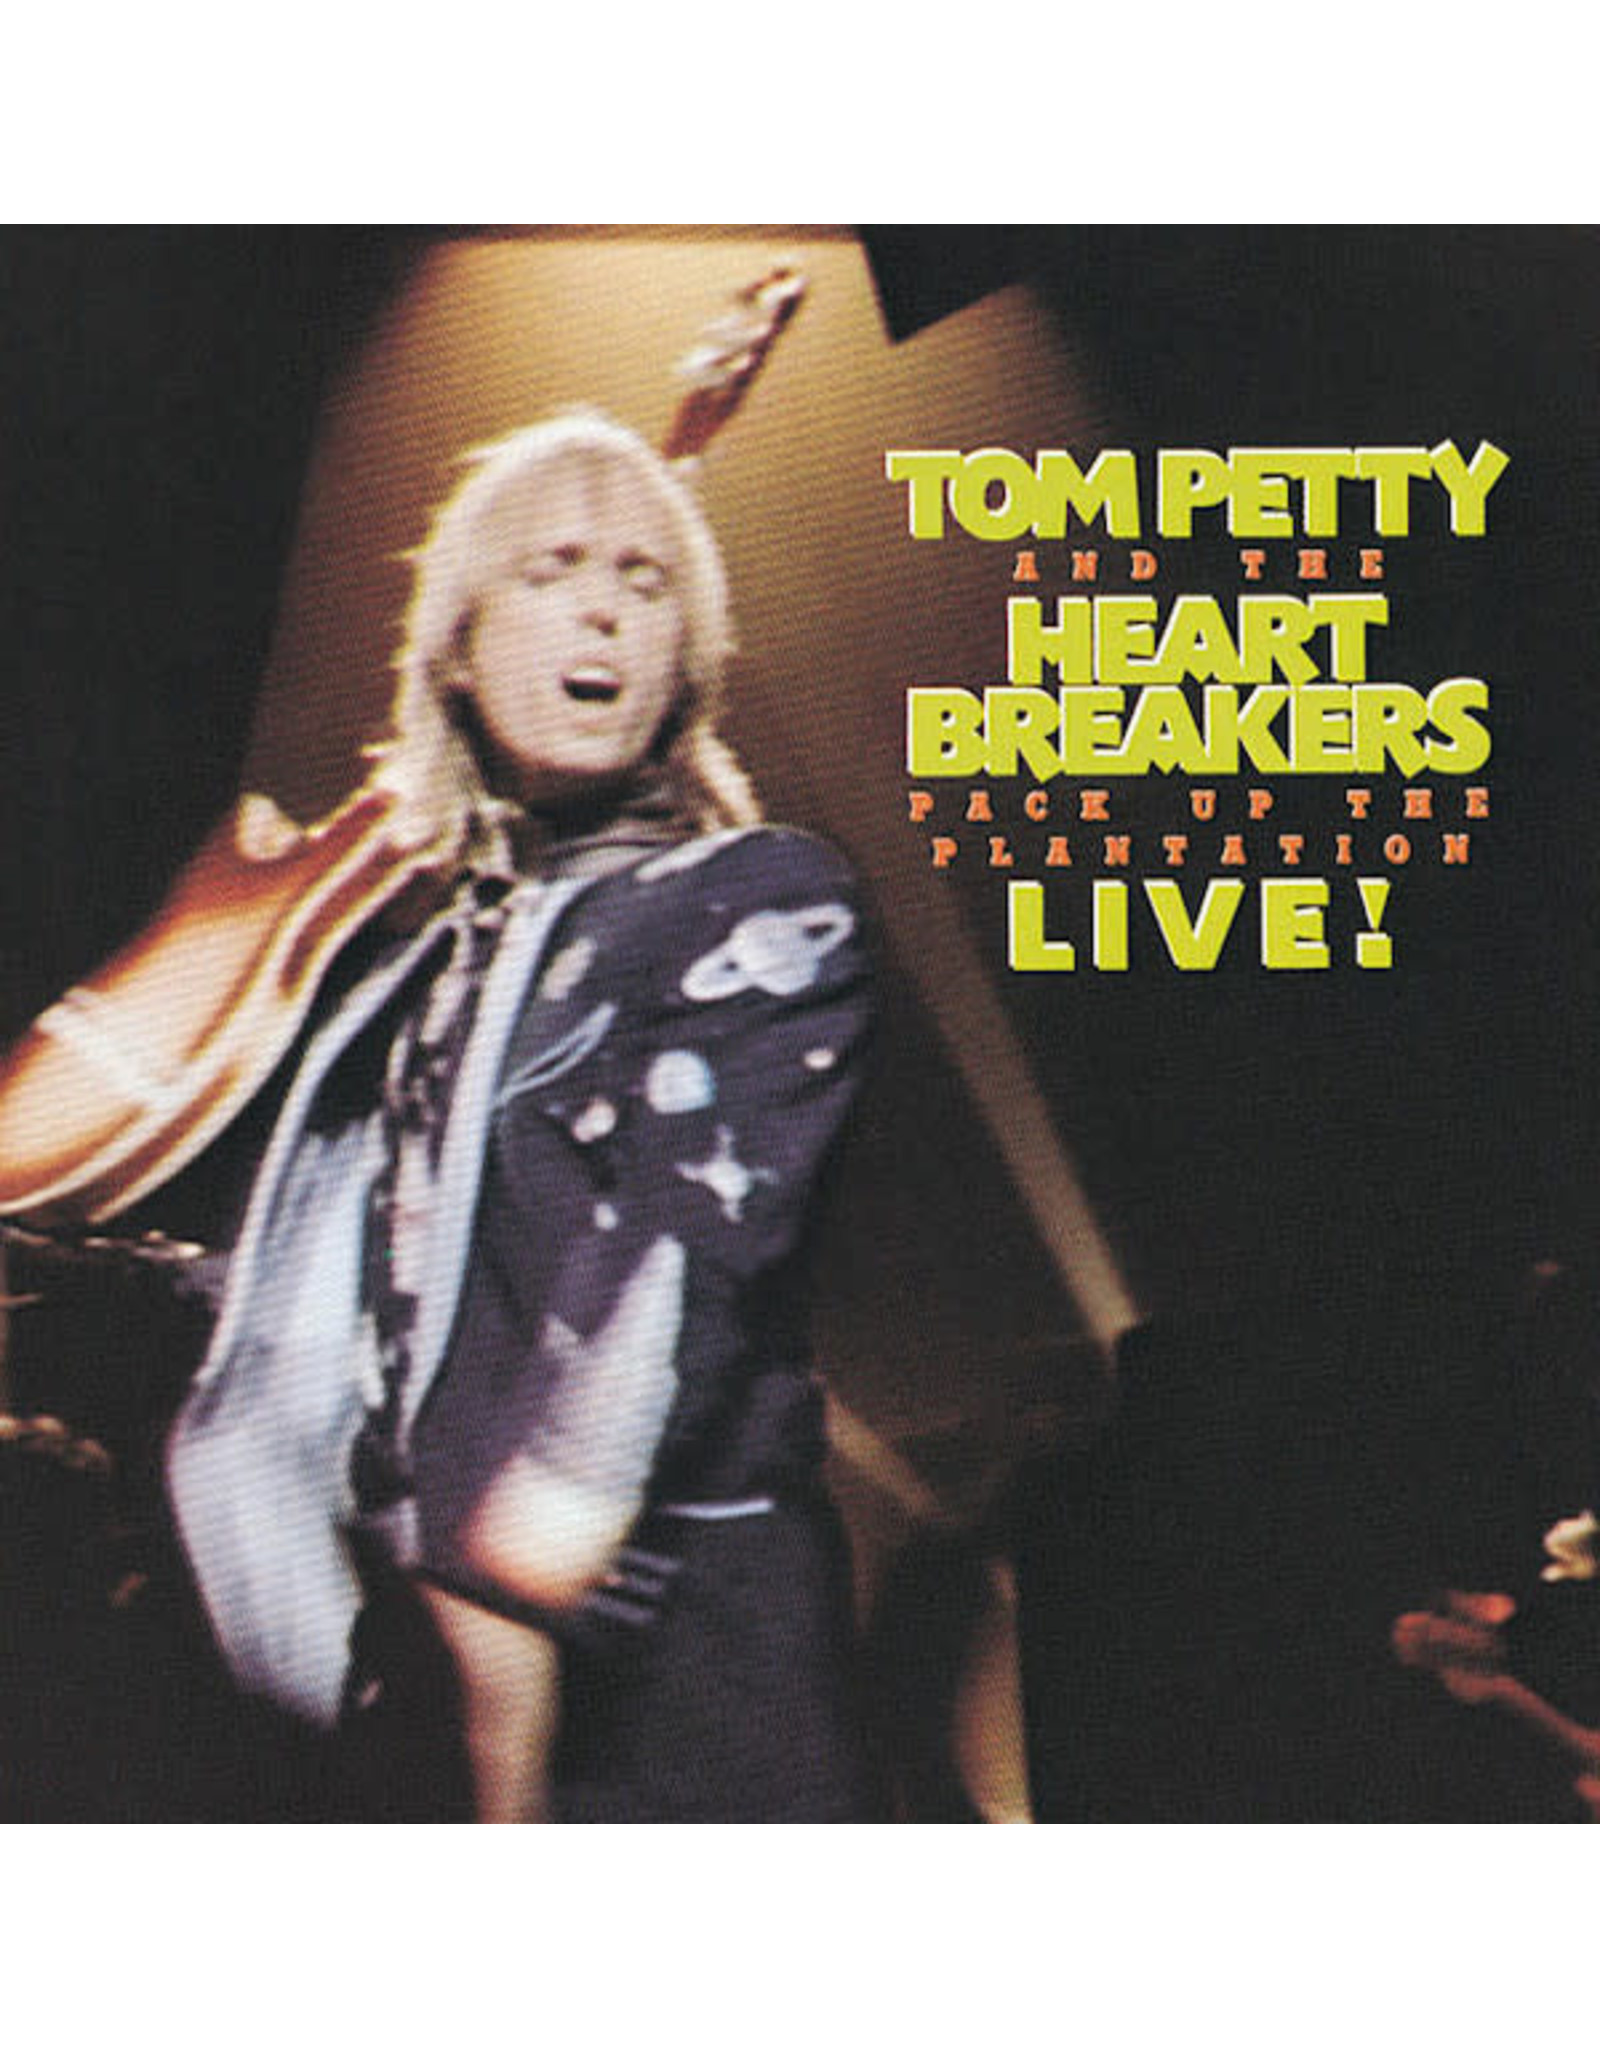 Vinyl Tom Petty - Pack Up The Plantation Live!